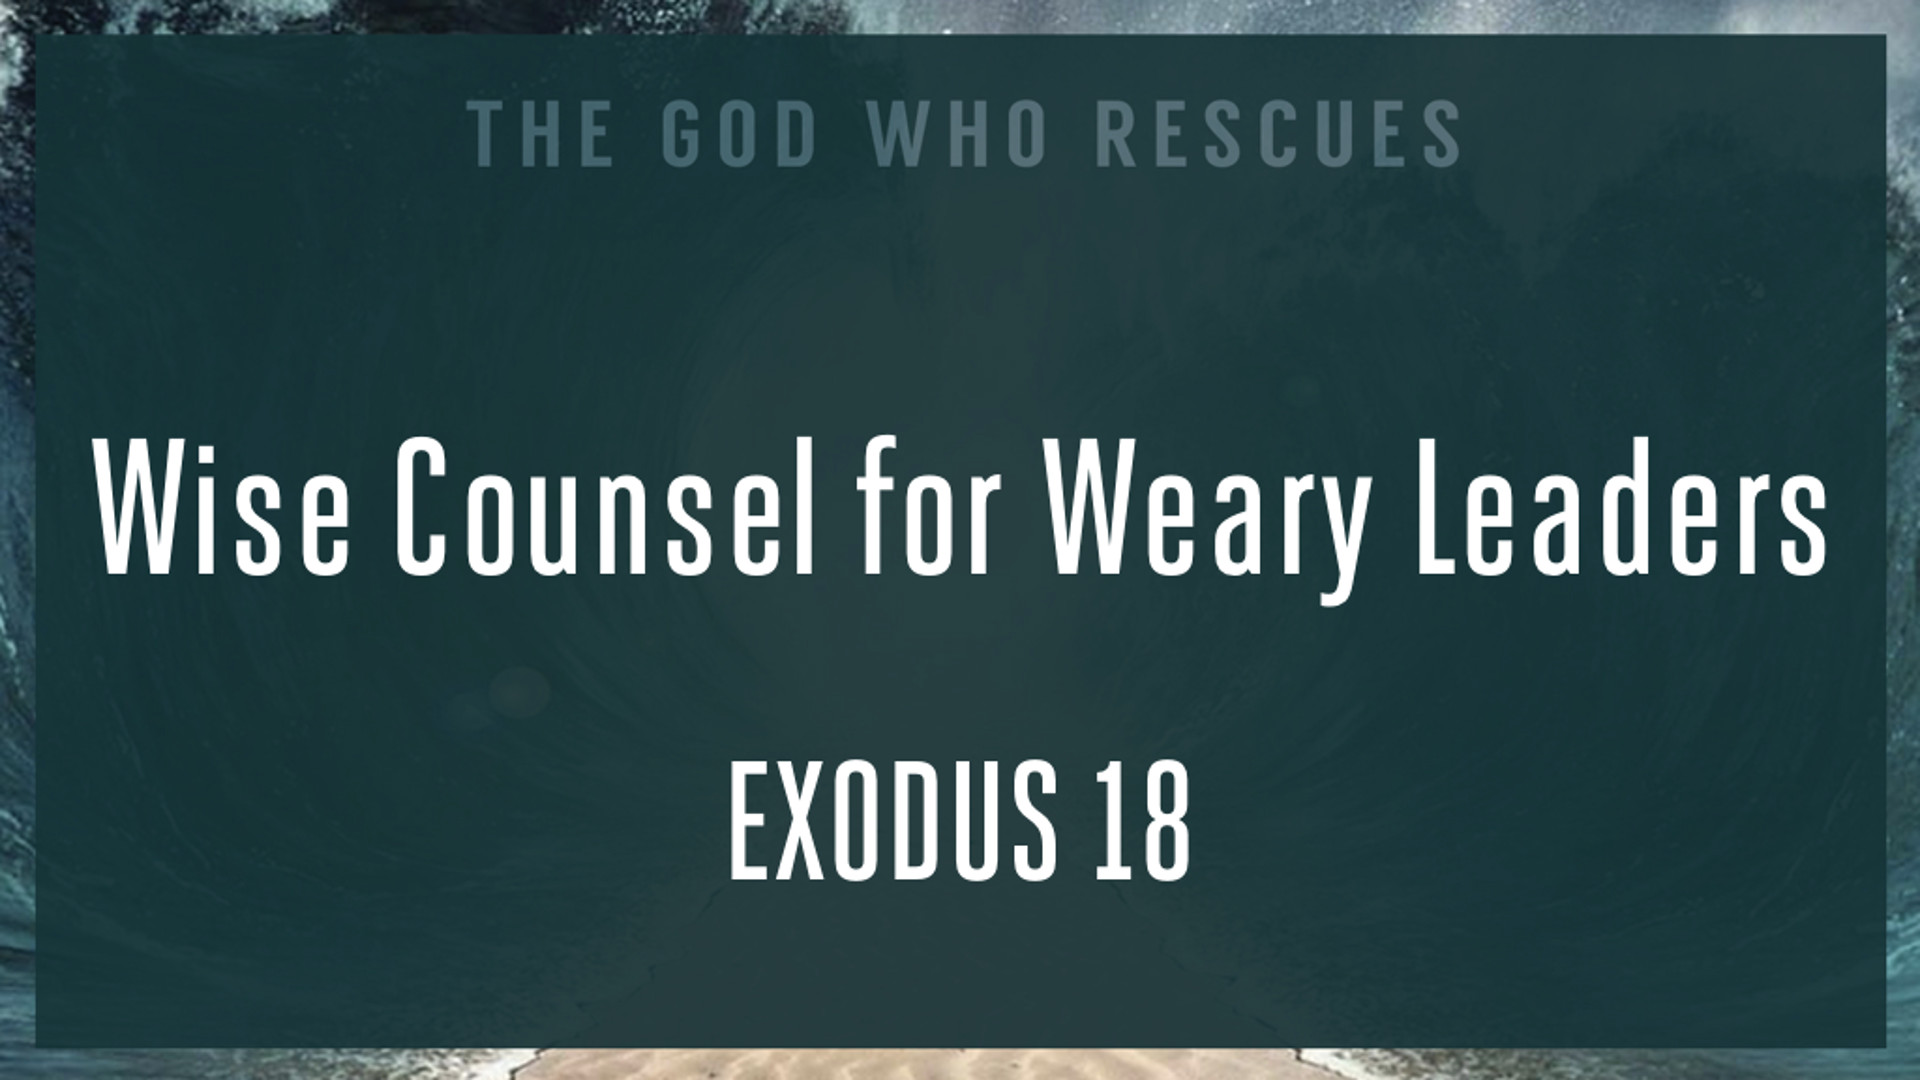 Exodus 18 Wise Counsel for Weary Leaders.jpg